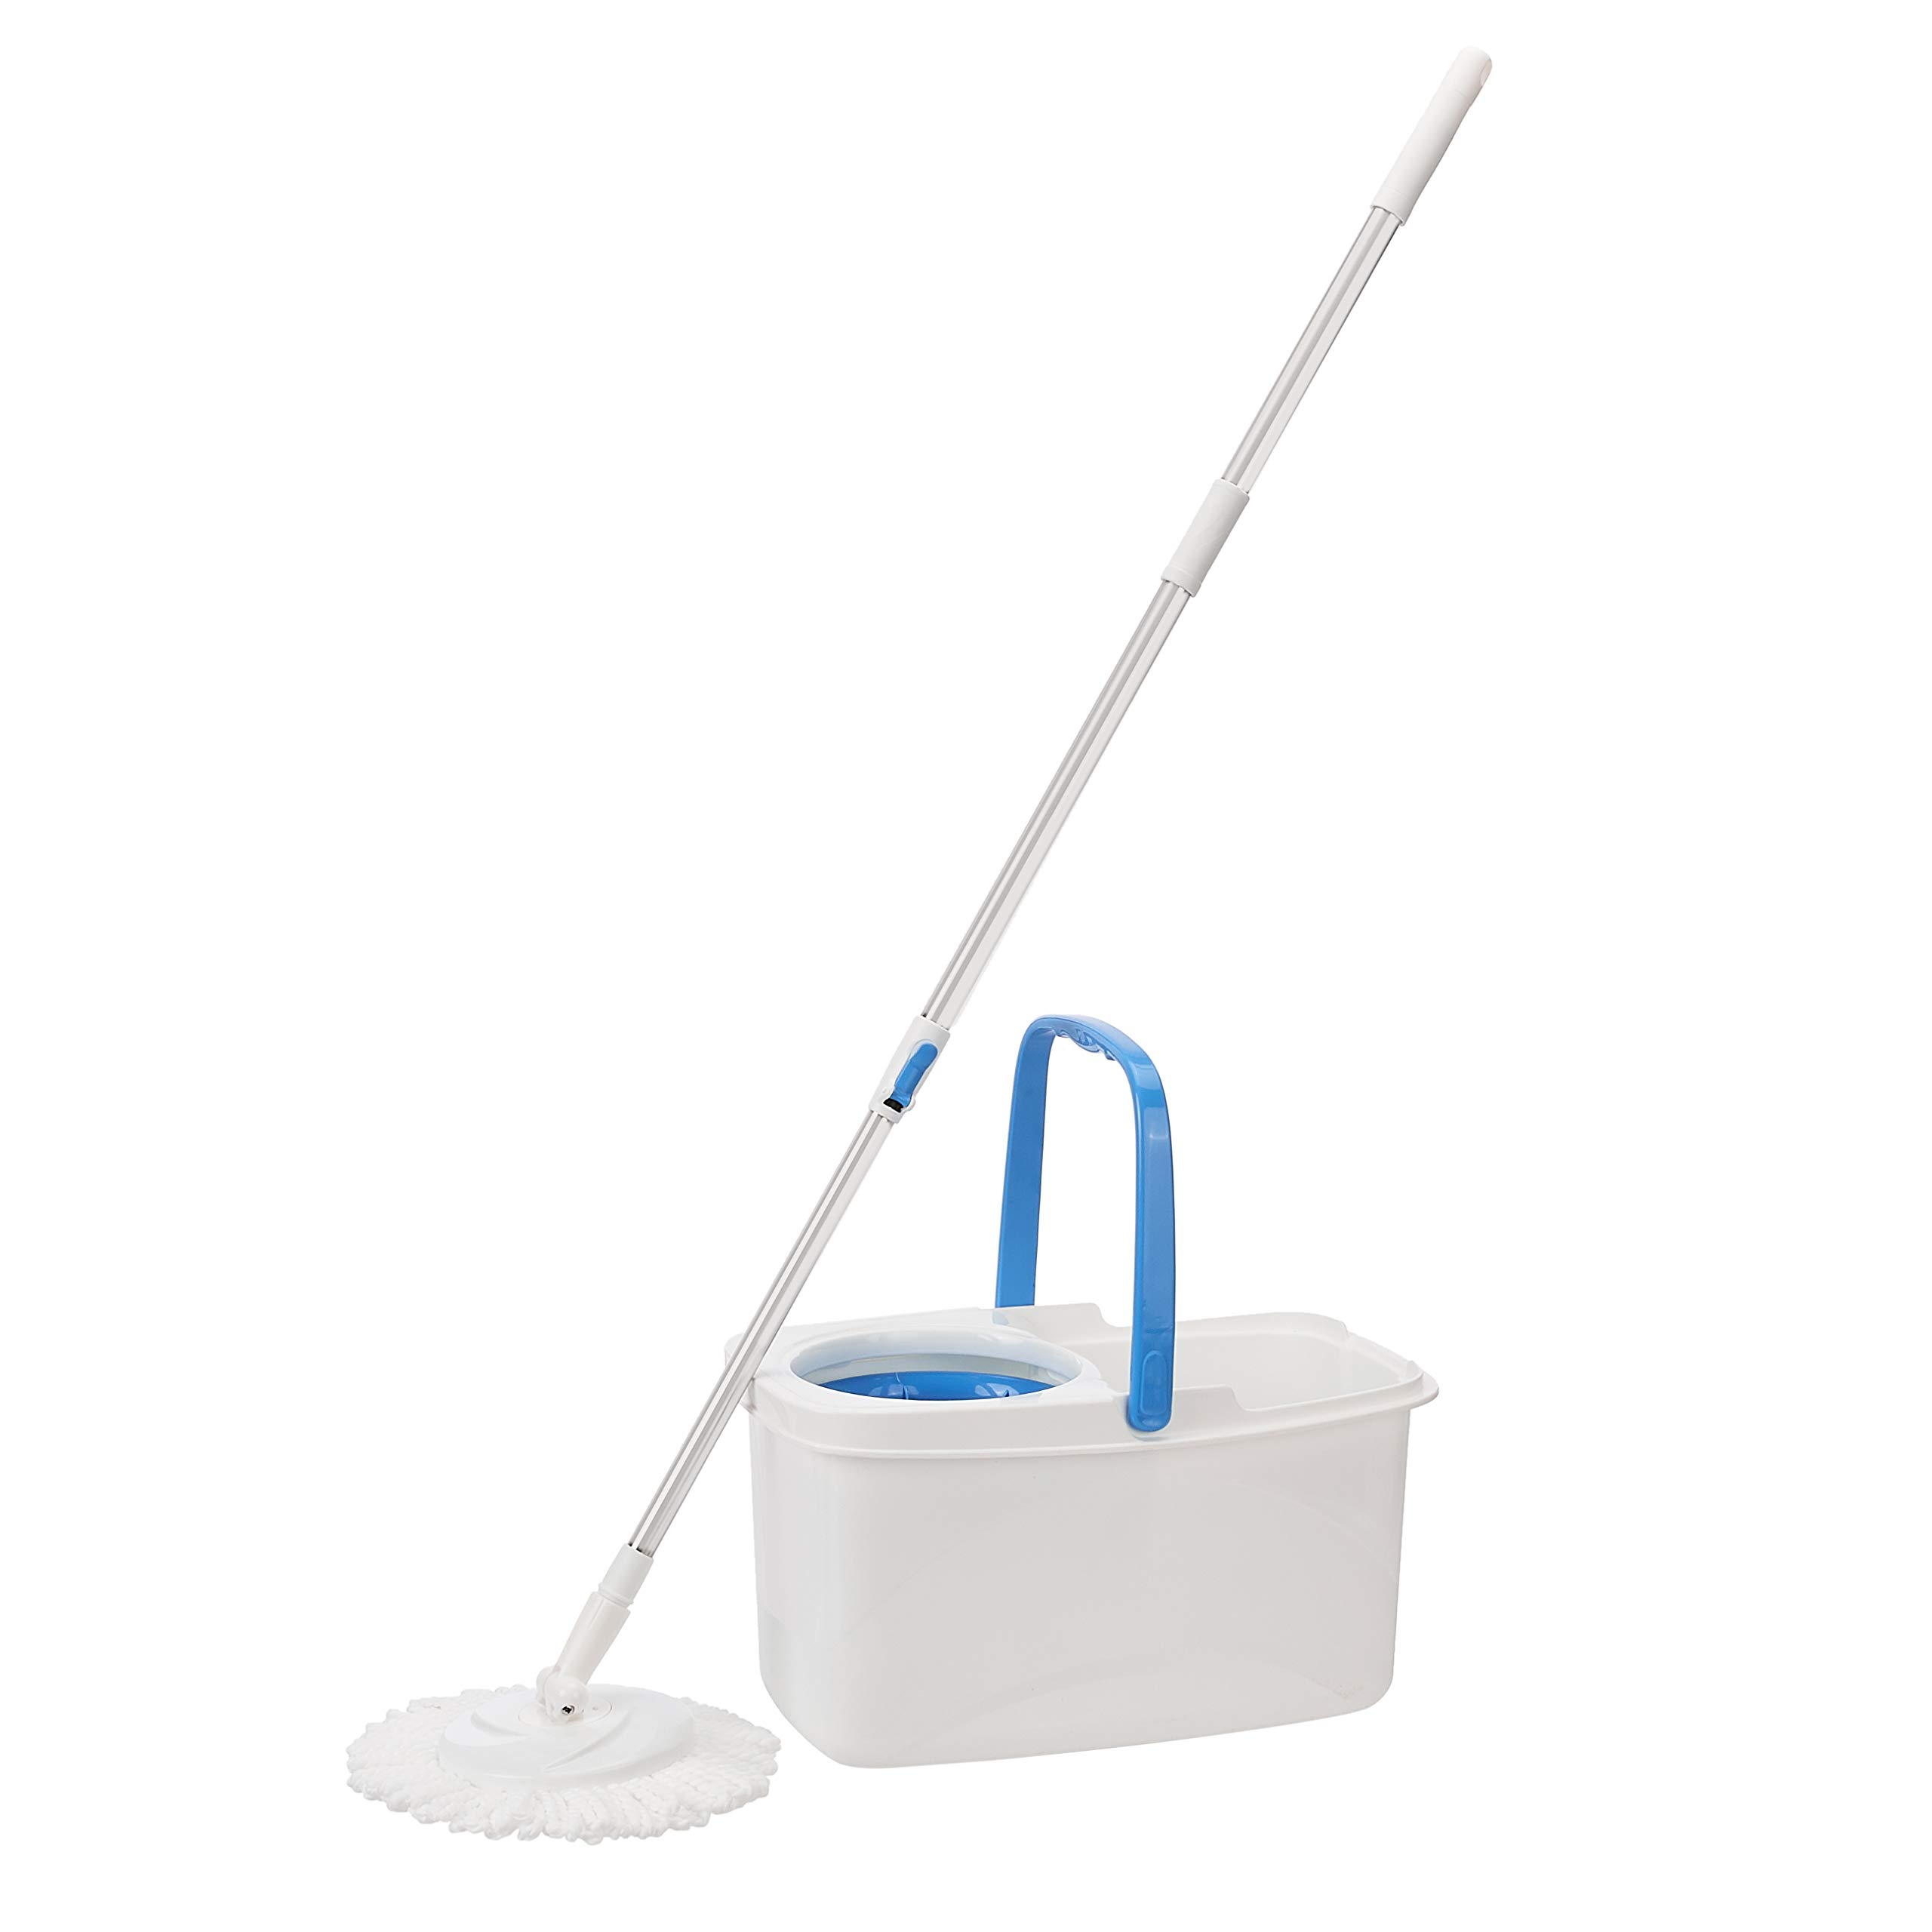 AmazonBasics Spin Mop with Built-In Ringer and Large Water Bucket